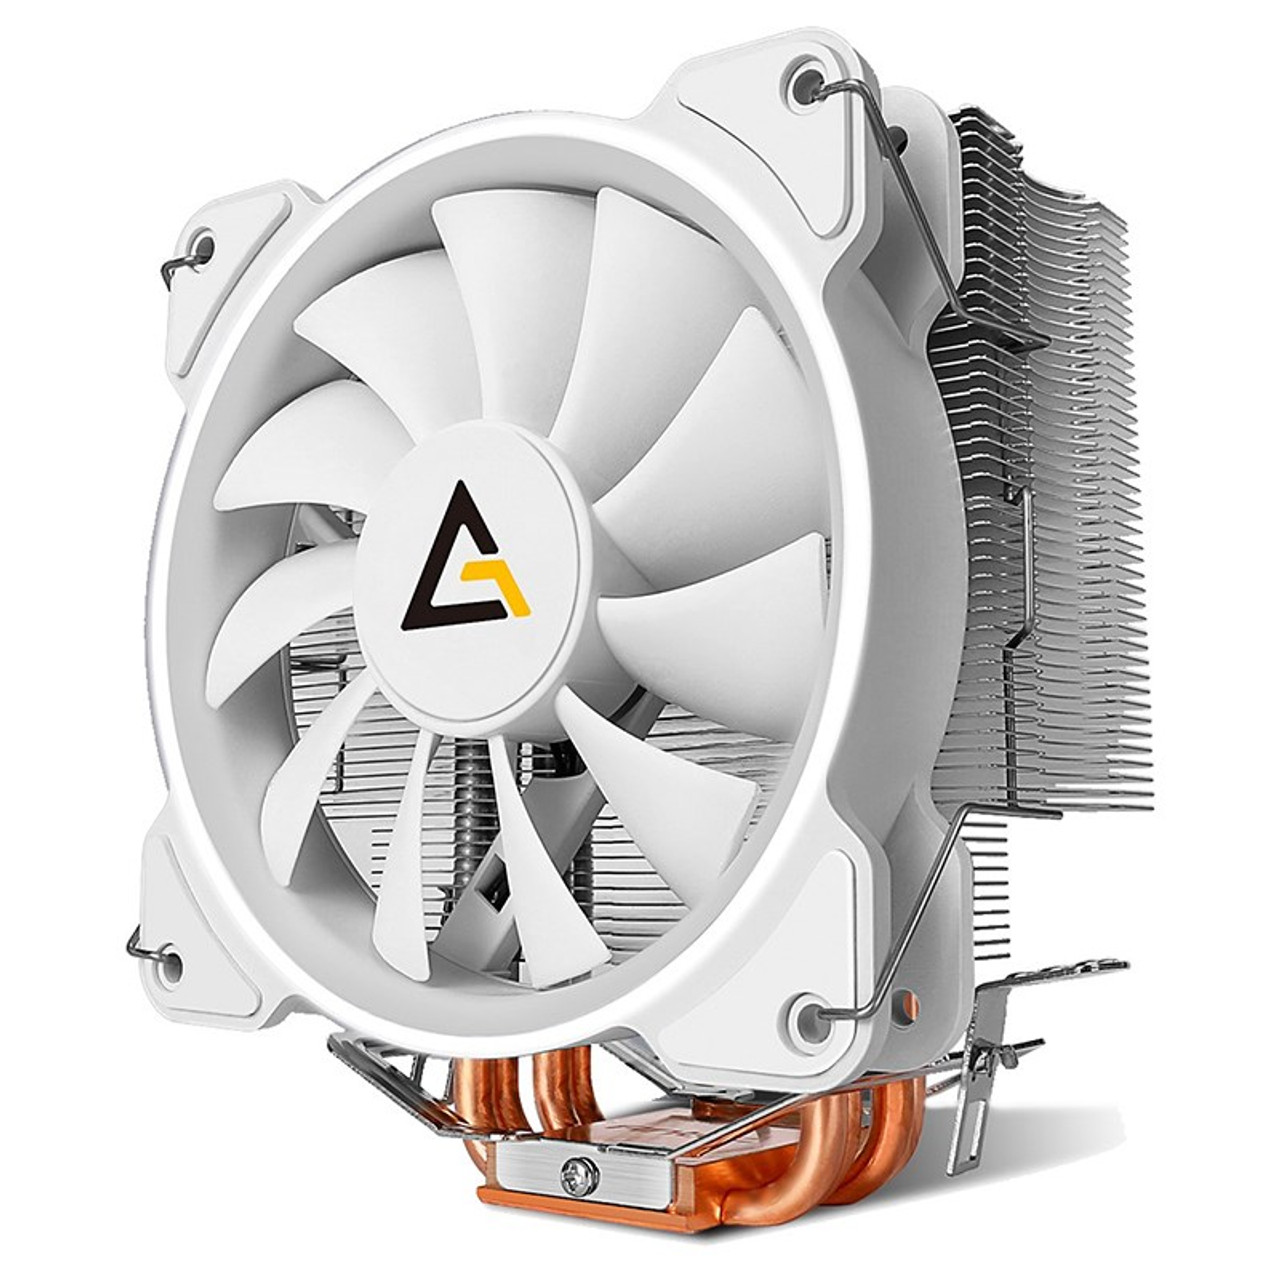 Product image for Antec C400 Glacial LED CPU Air Cooler | CX Computer Superstore